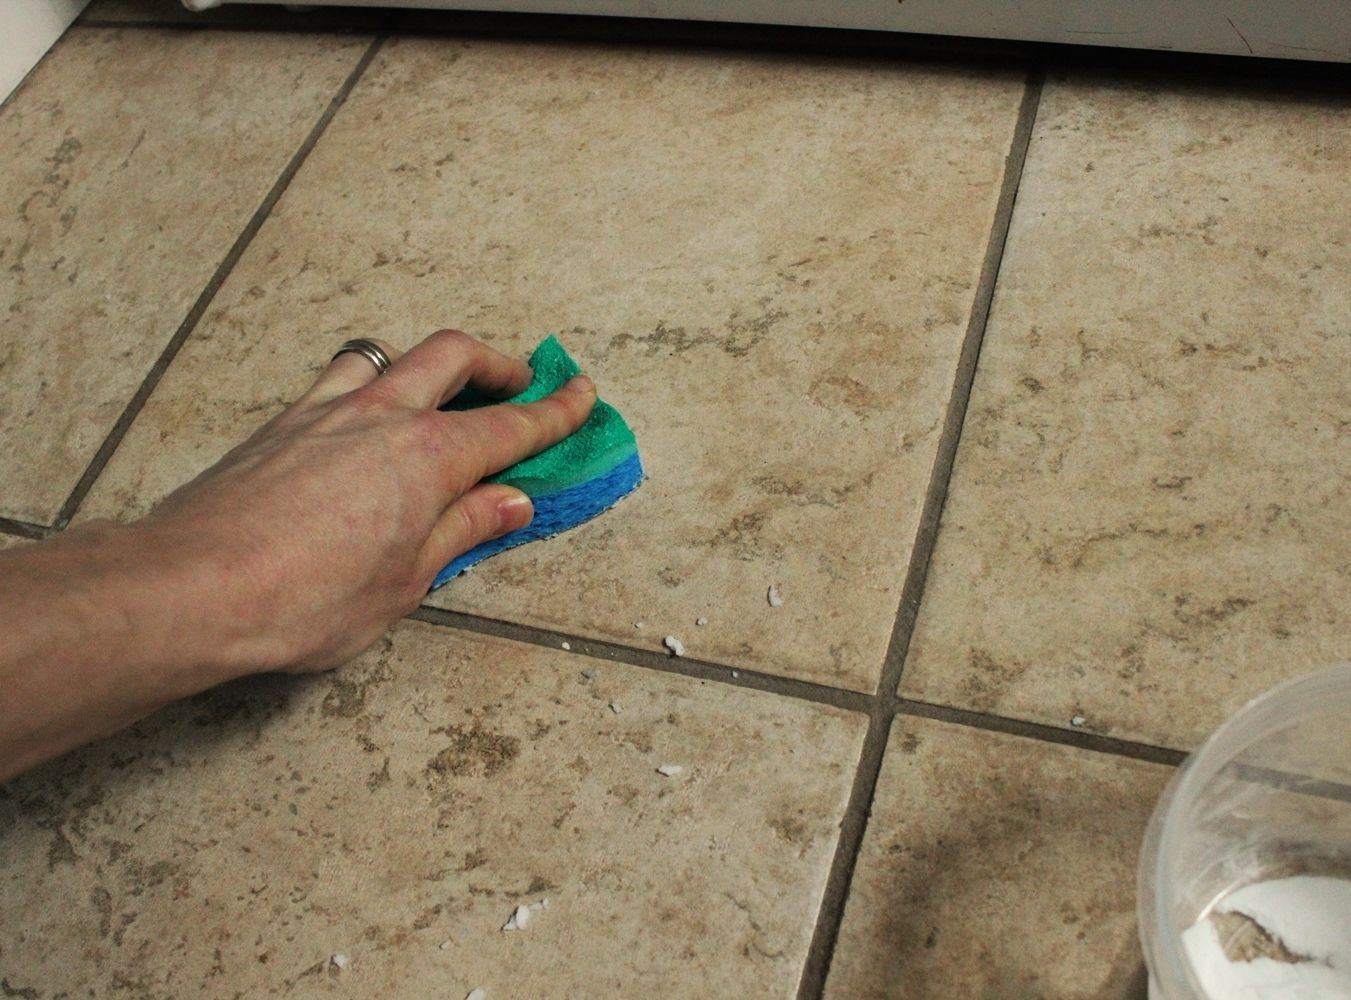 How To Clean Bathroom Tile Grout Diy Natural Tile Or Grout Cleaner